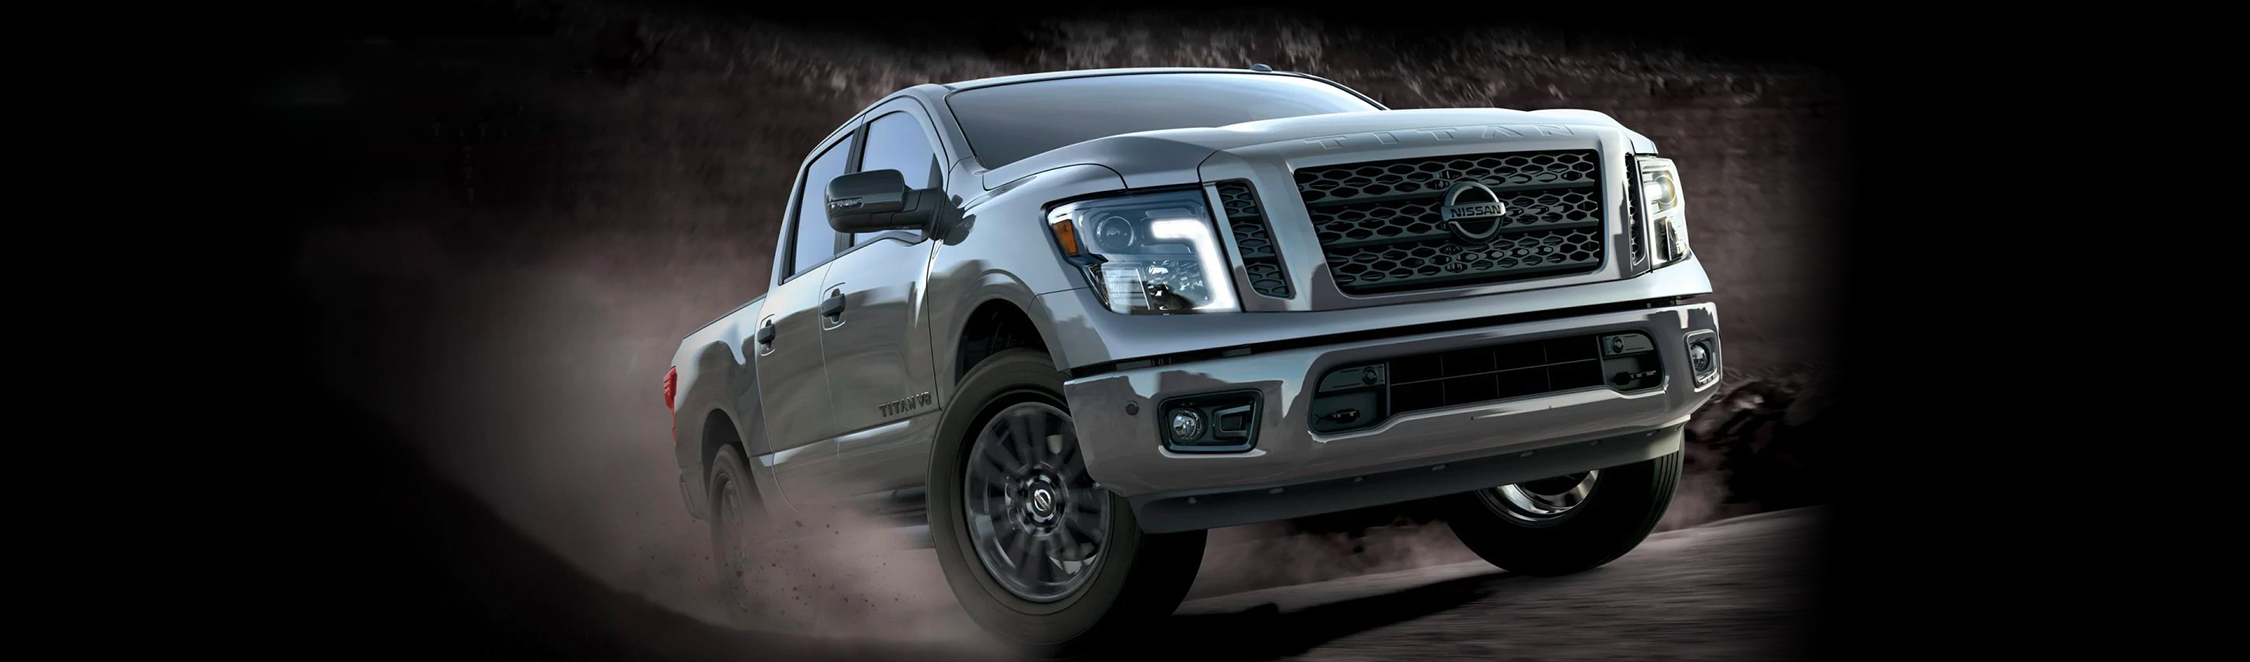 Get a great deal on a Nissan TITAN during the Black Friday Sales Event.